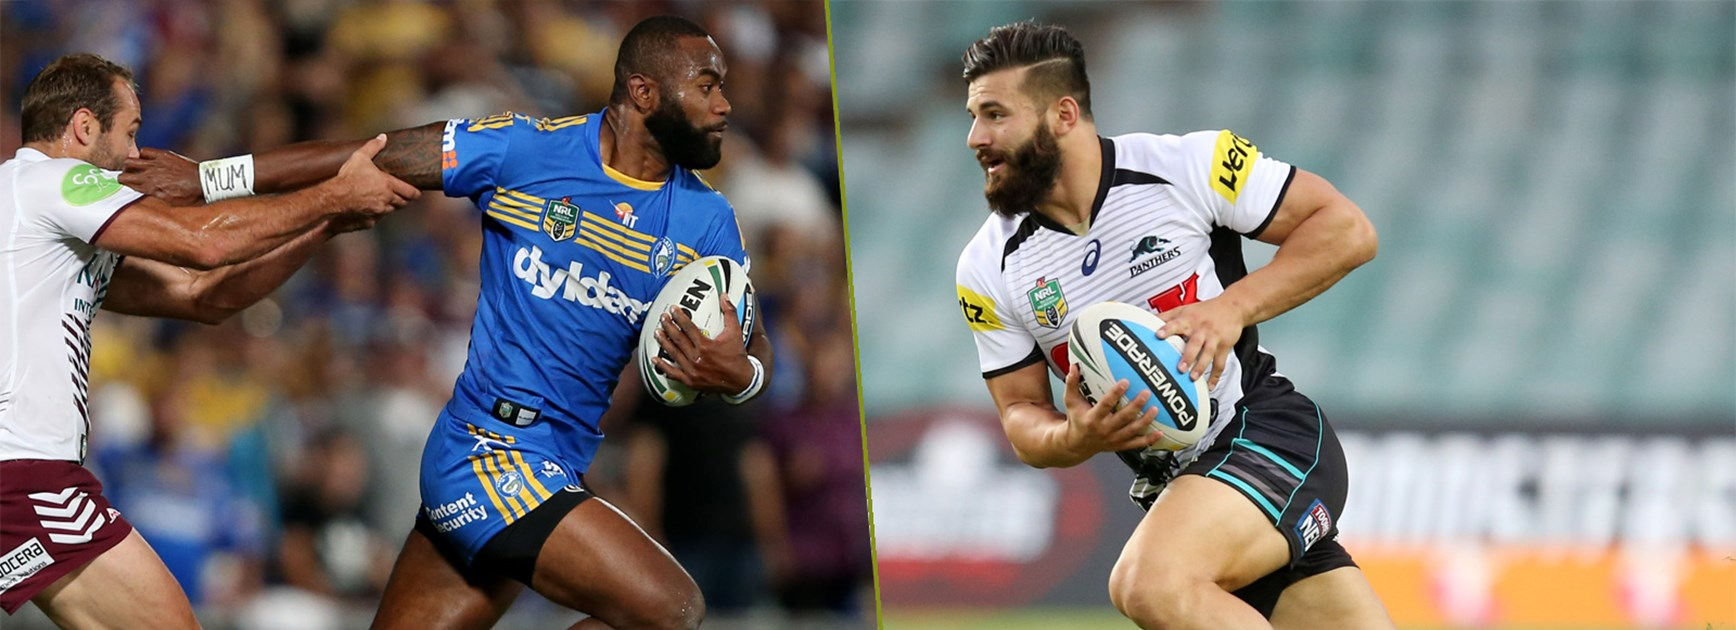 Rampaging wingers Semi Radradra and Josh Mansour are two of the hardest men to stop in the NRL.